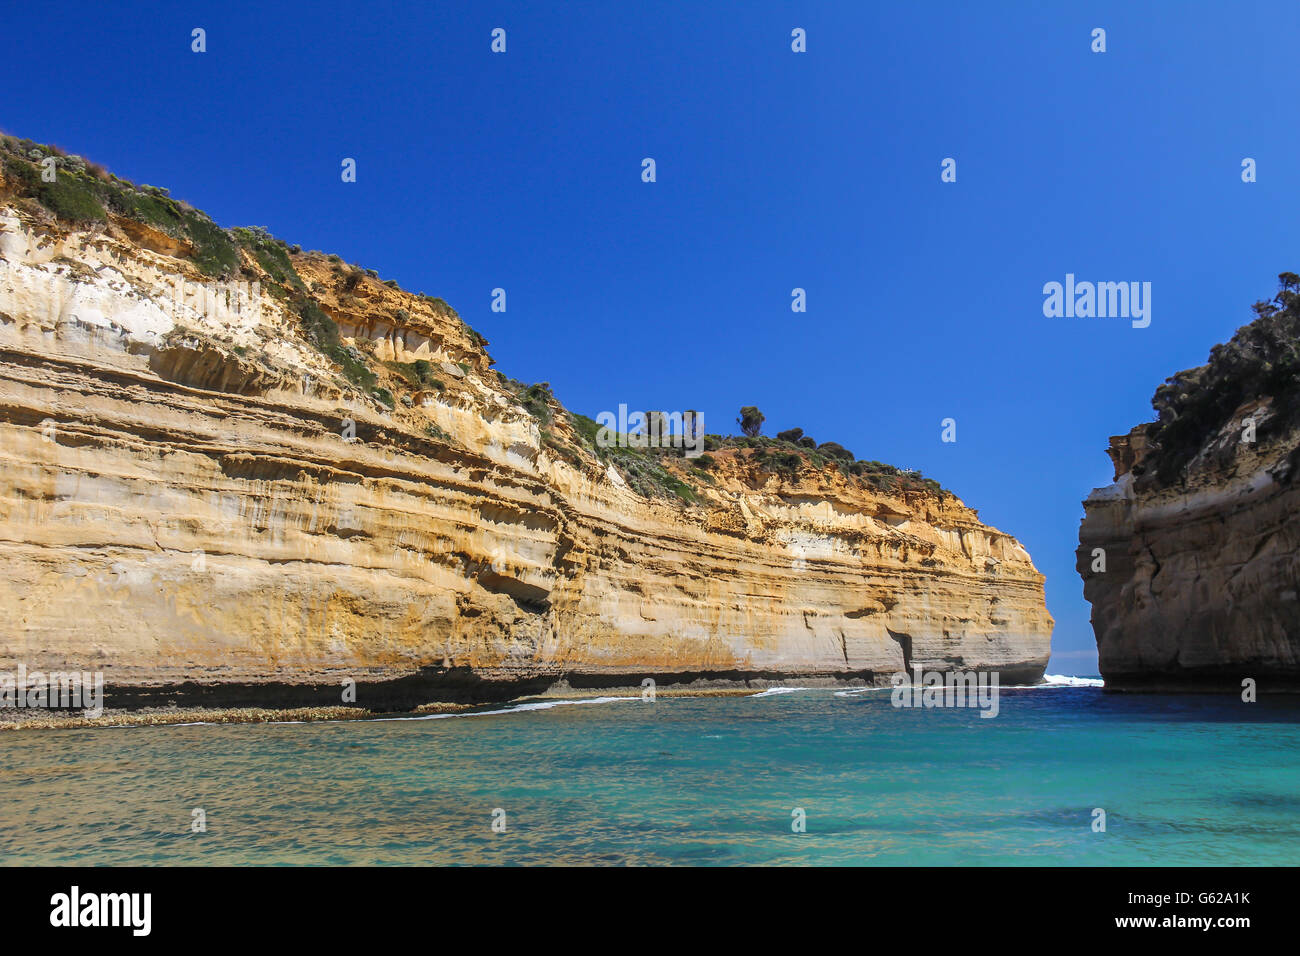 Loch Ard Gorge in Australia Great ocean road - Stock Image